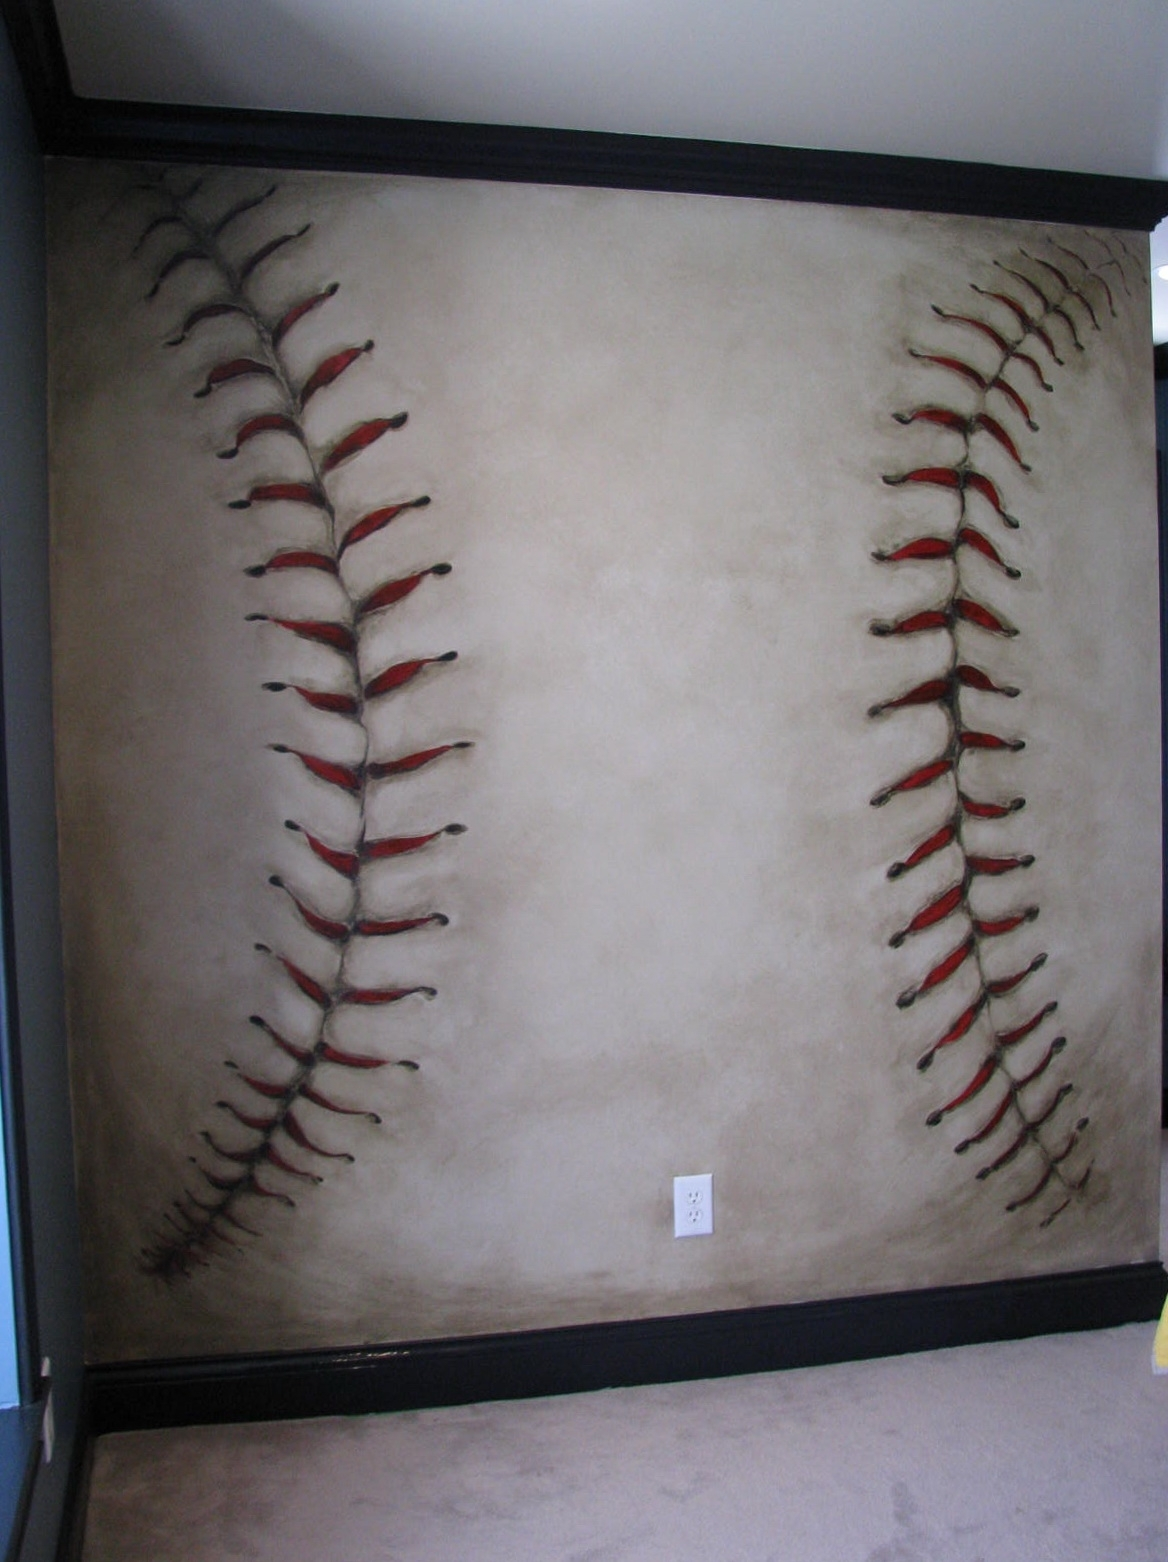 Baseball Wall Art – Prix Dalle Beton Throughout Best And Newest Baseball Wall Art (View 2 of 20)